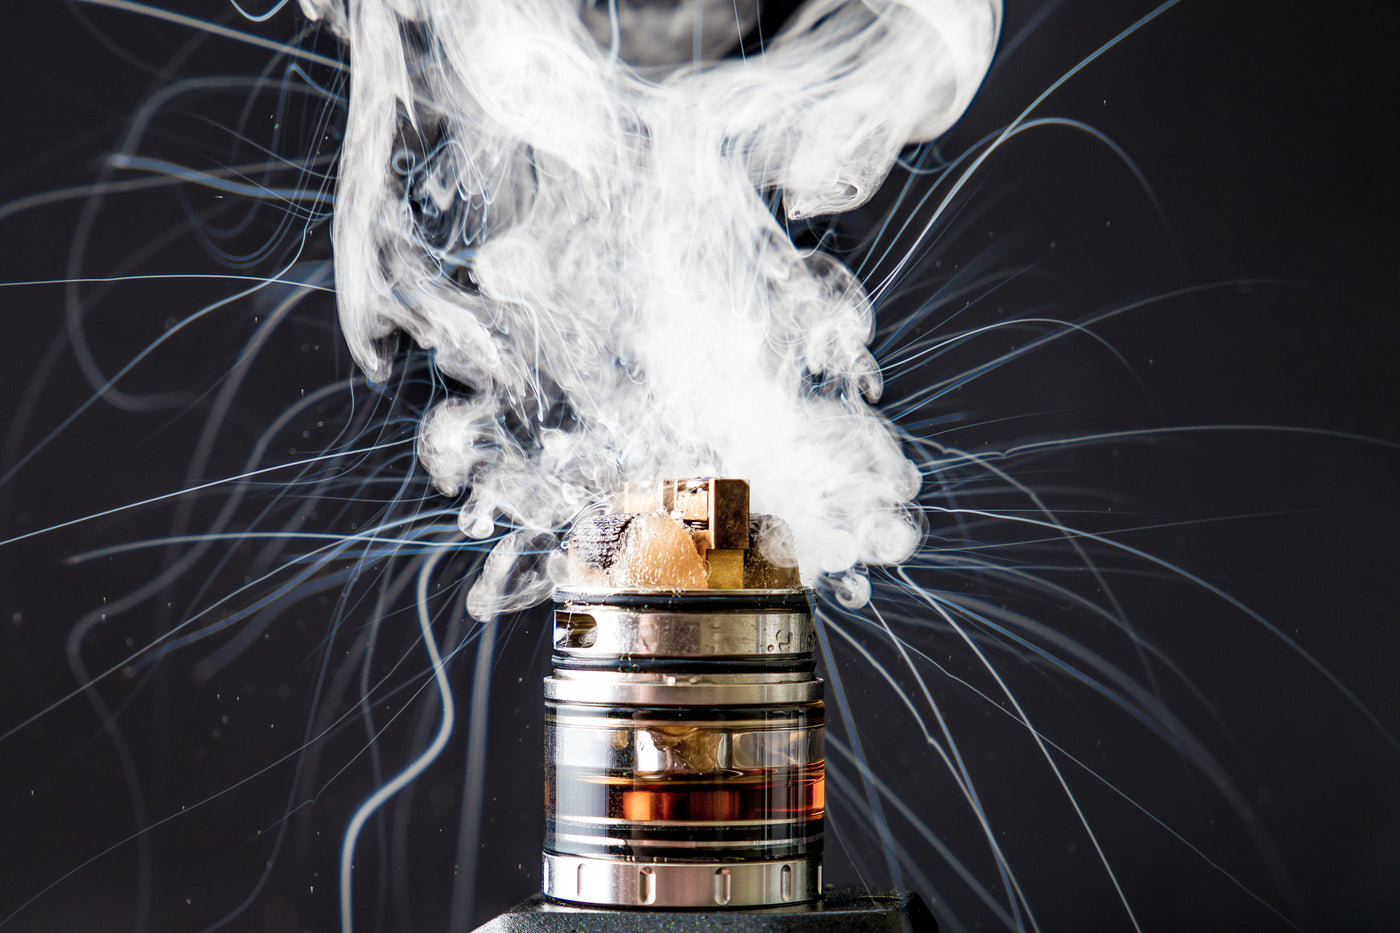 Vape Coil Replacement: How Often Should You Change Your Vape Coil